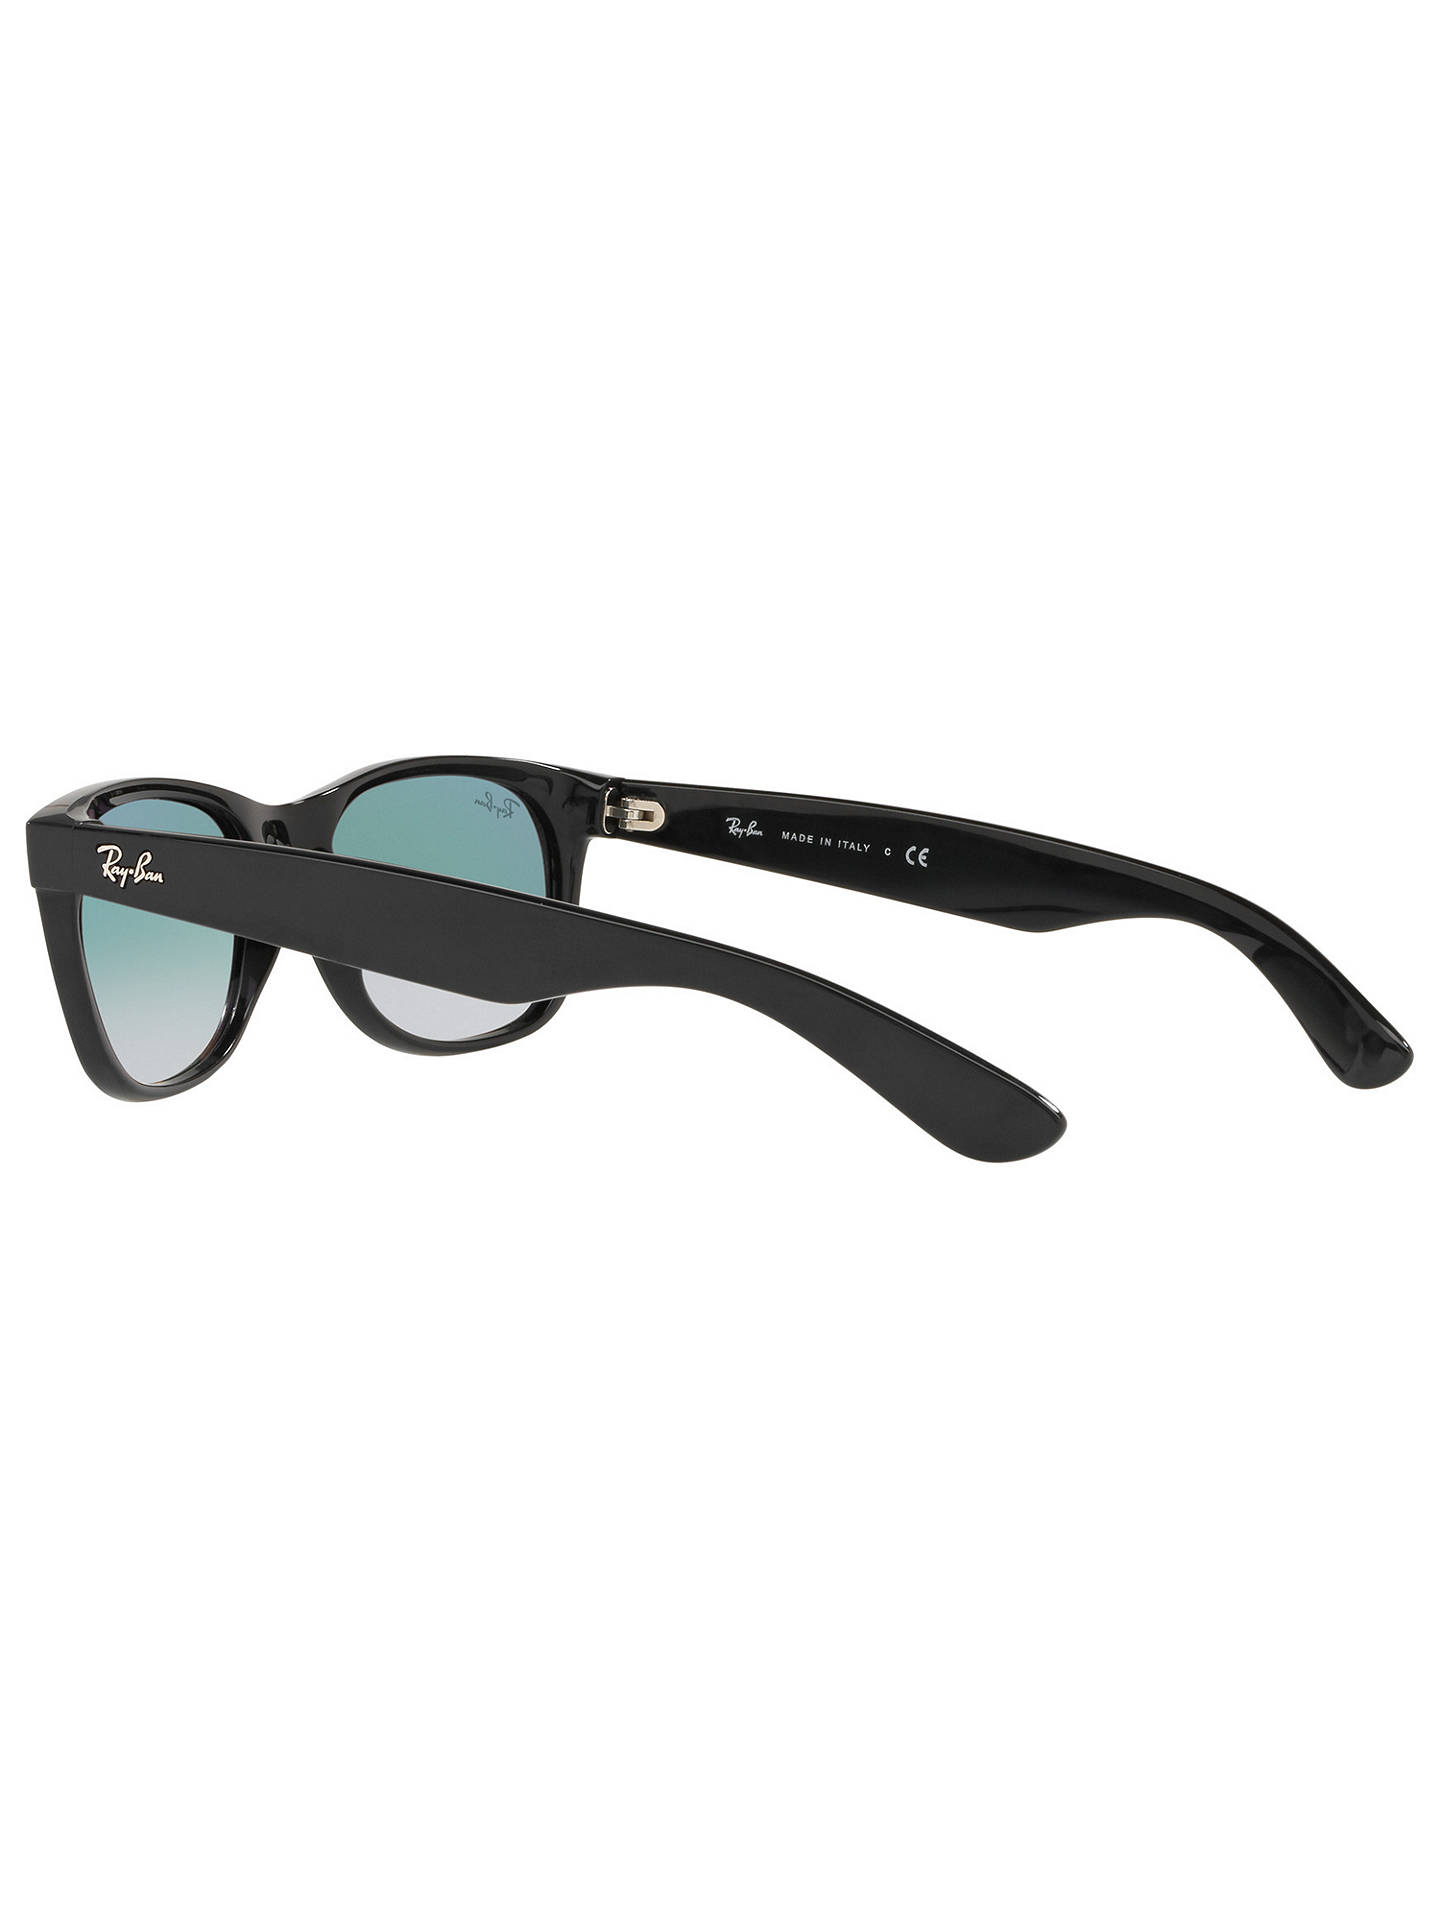 BuyRay-Ban RB2132 Men's New Wayfarer Sunglasses, Black/ Blue Gradient Online at johnlewis.com